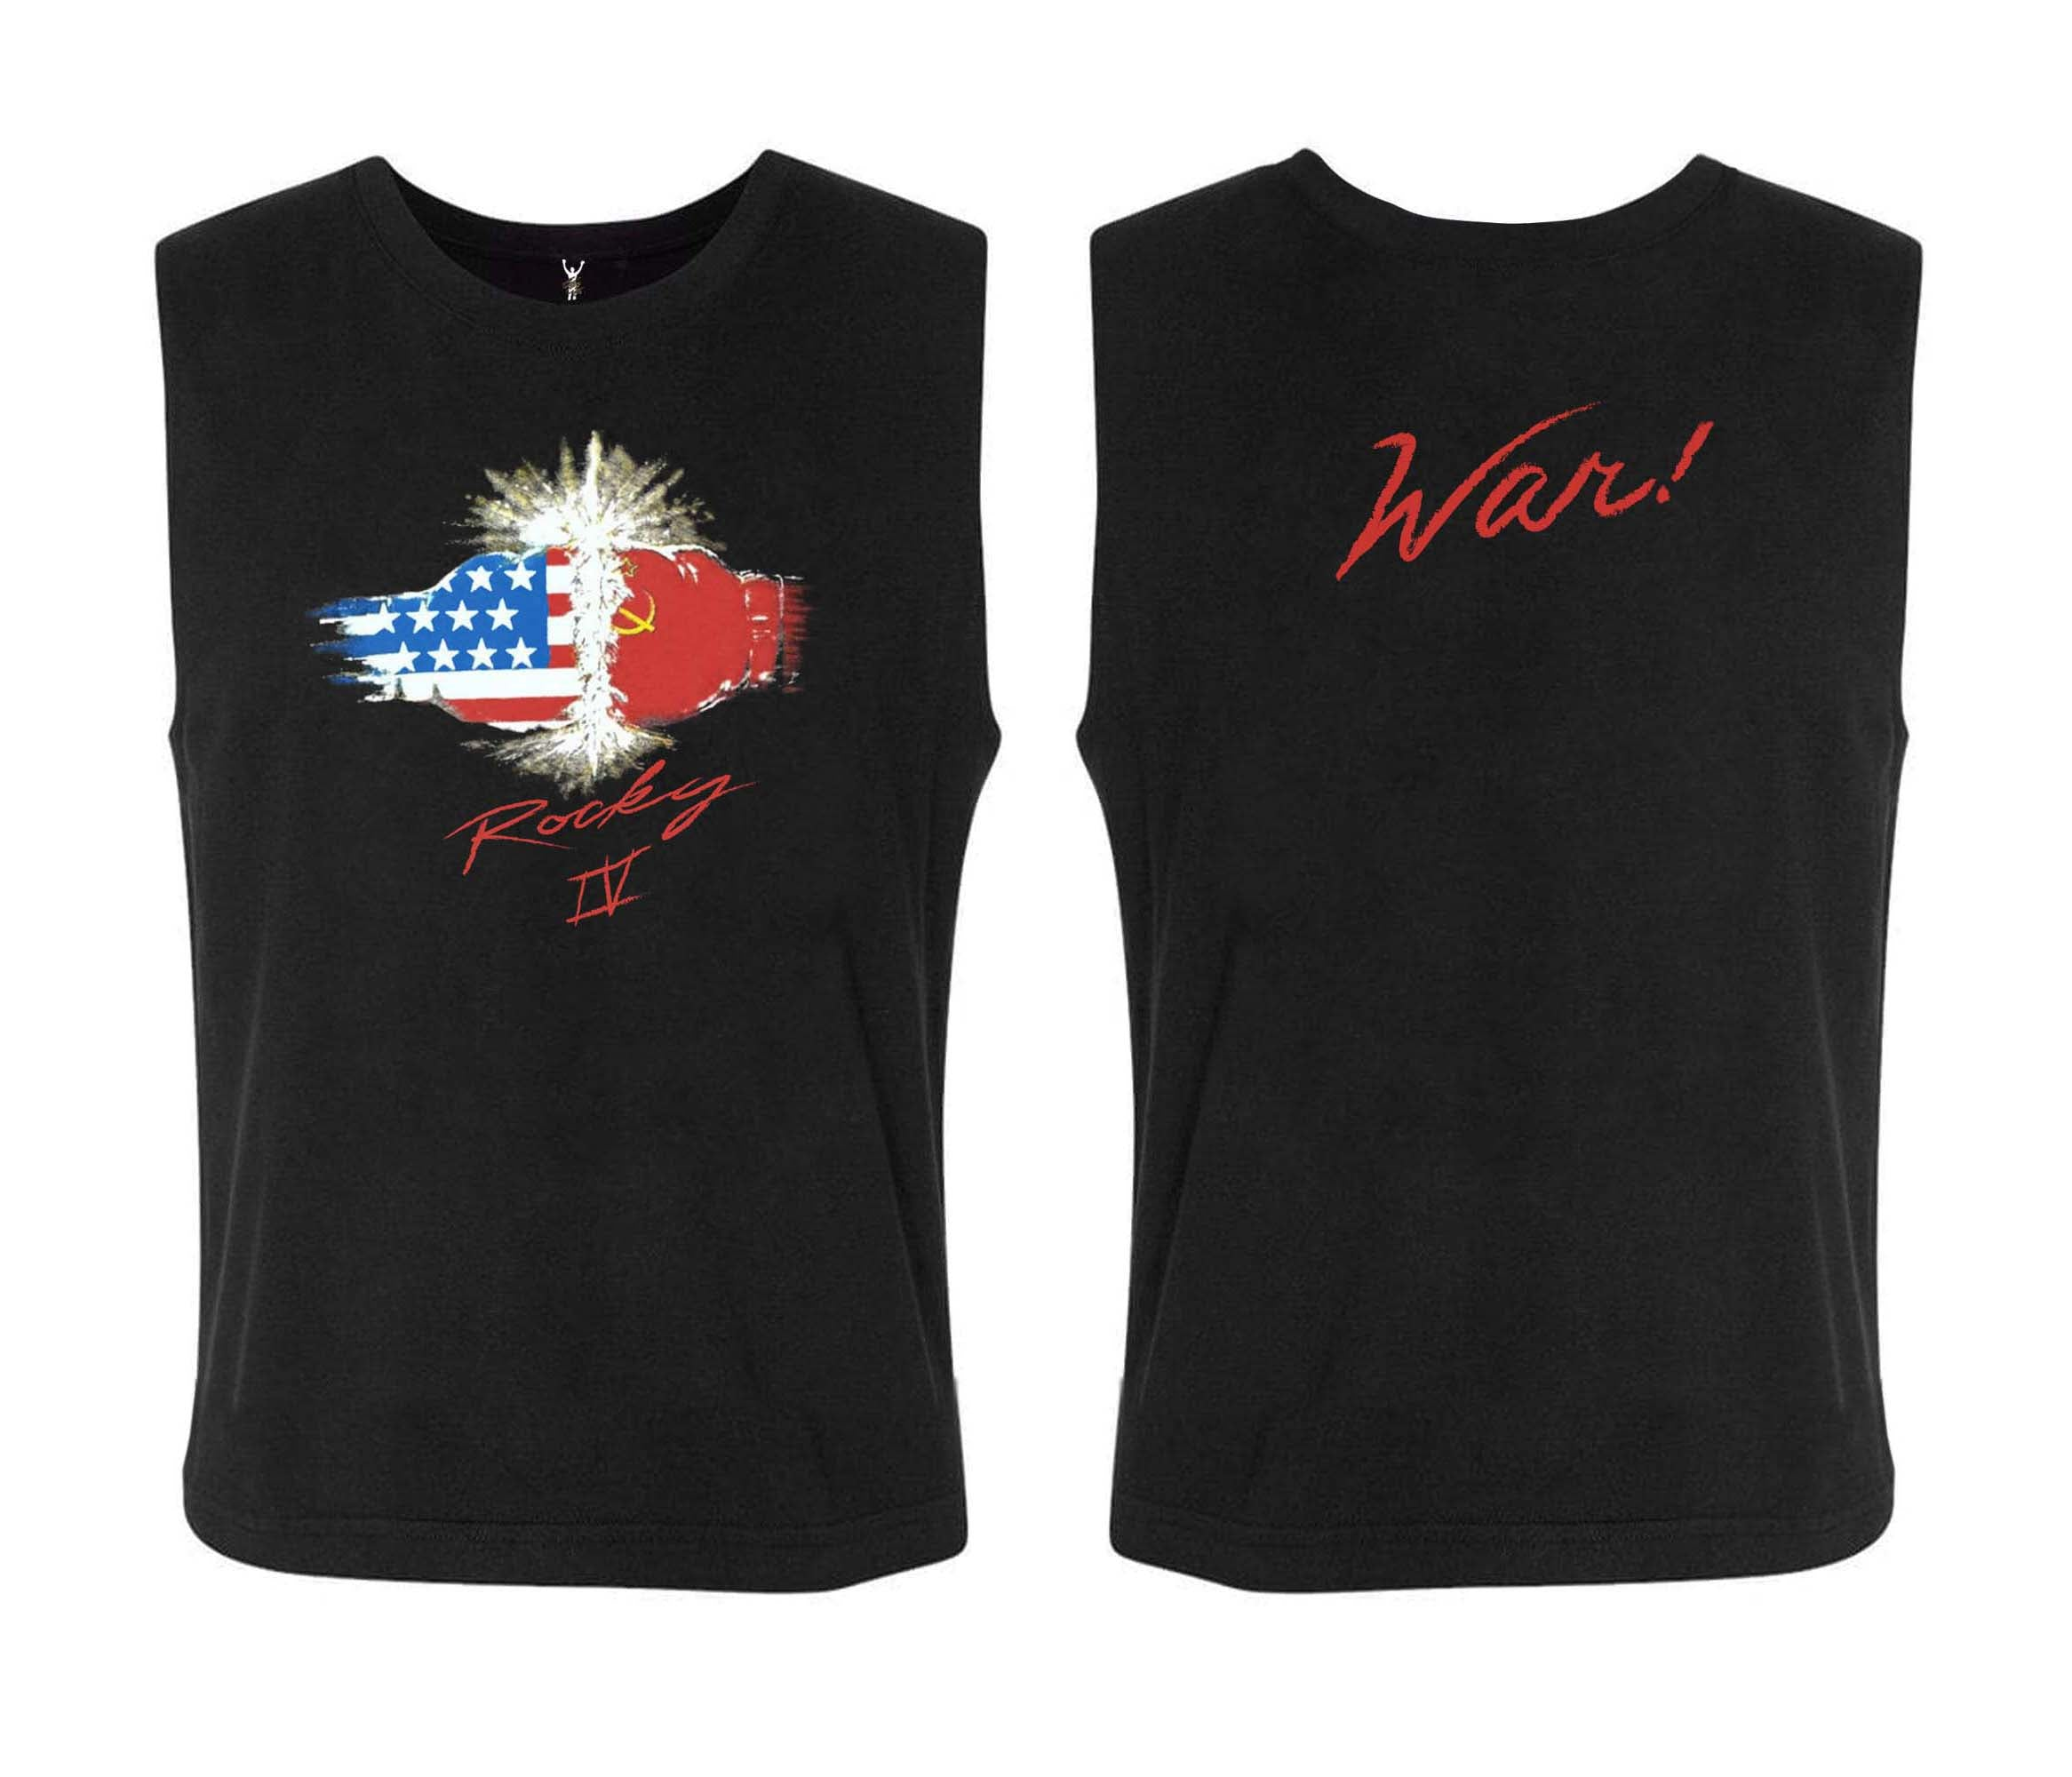 "Rocky IV ""WAR!"" Sleeveless Tee"